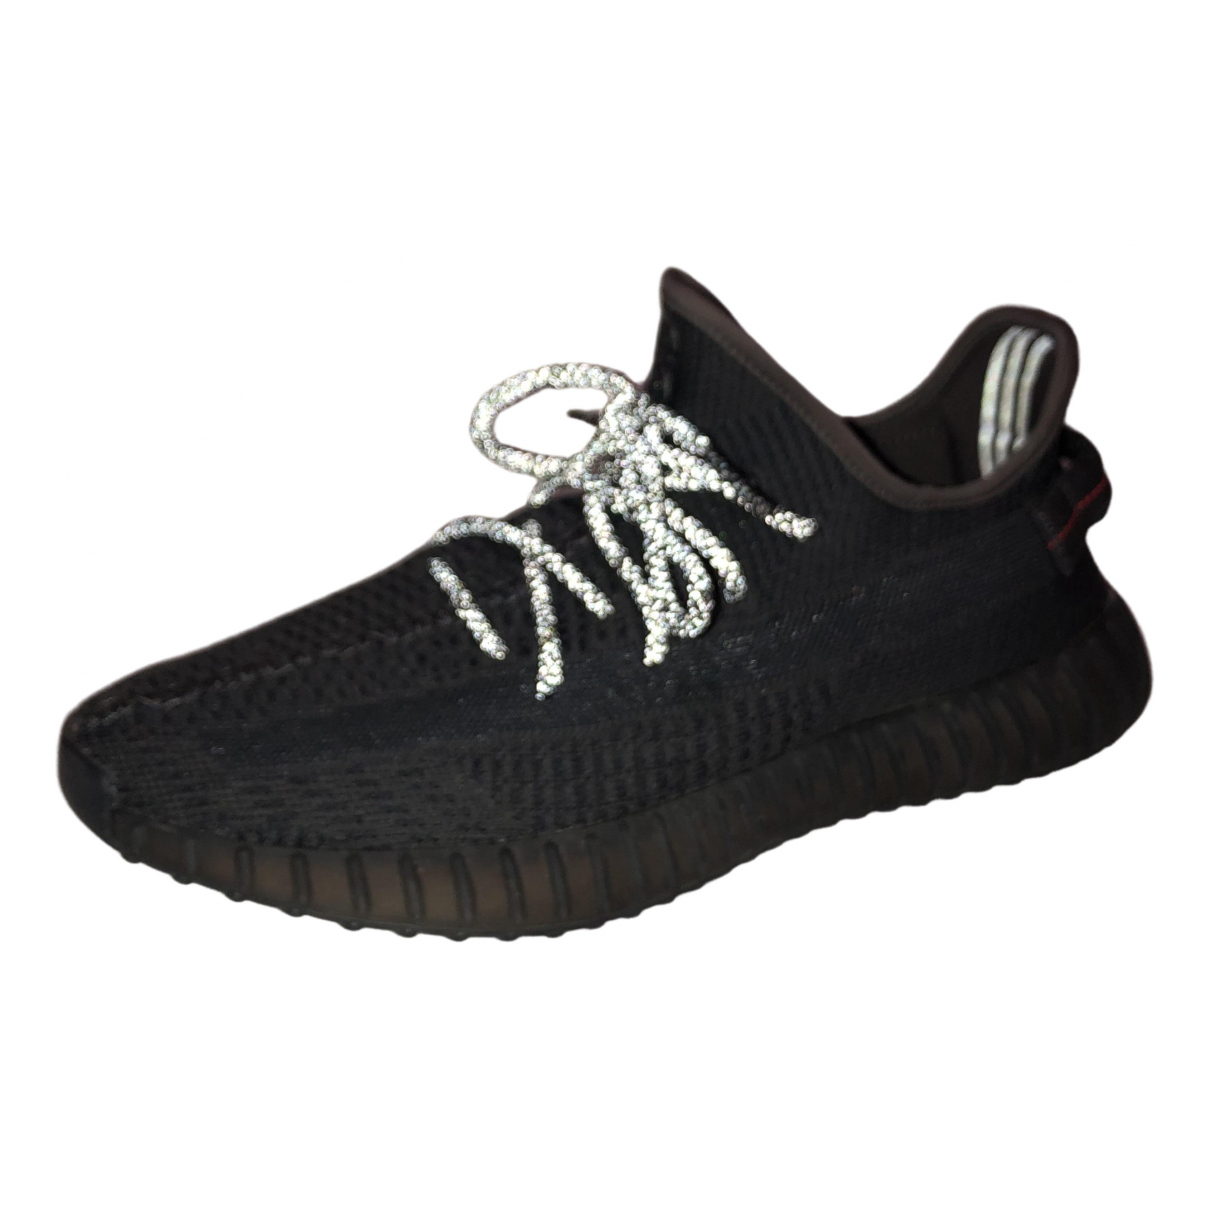 Yeezy X Adidas Boost 350 V2 Black Cloth Trainers for Men 11 UK